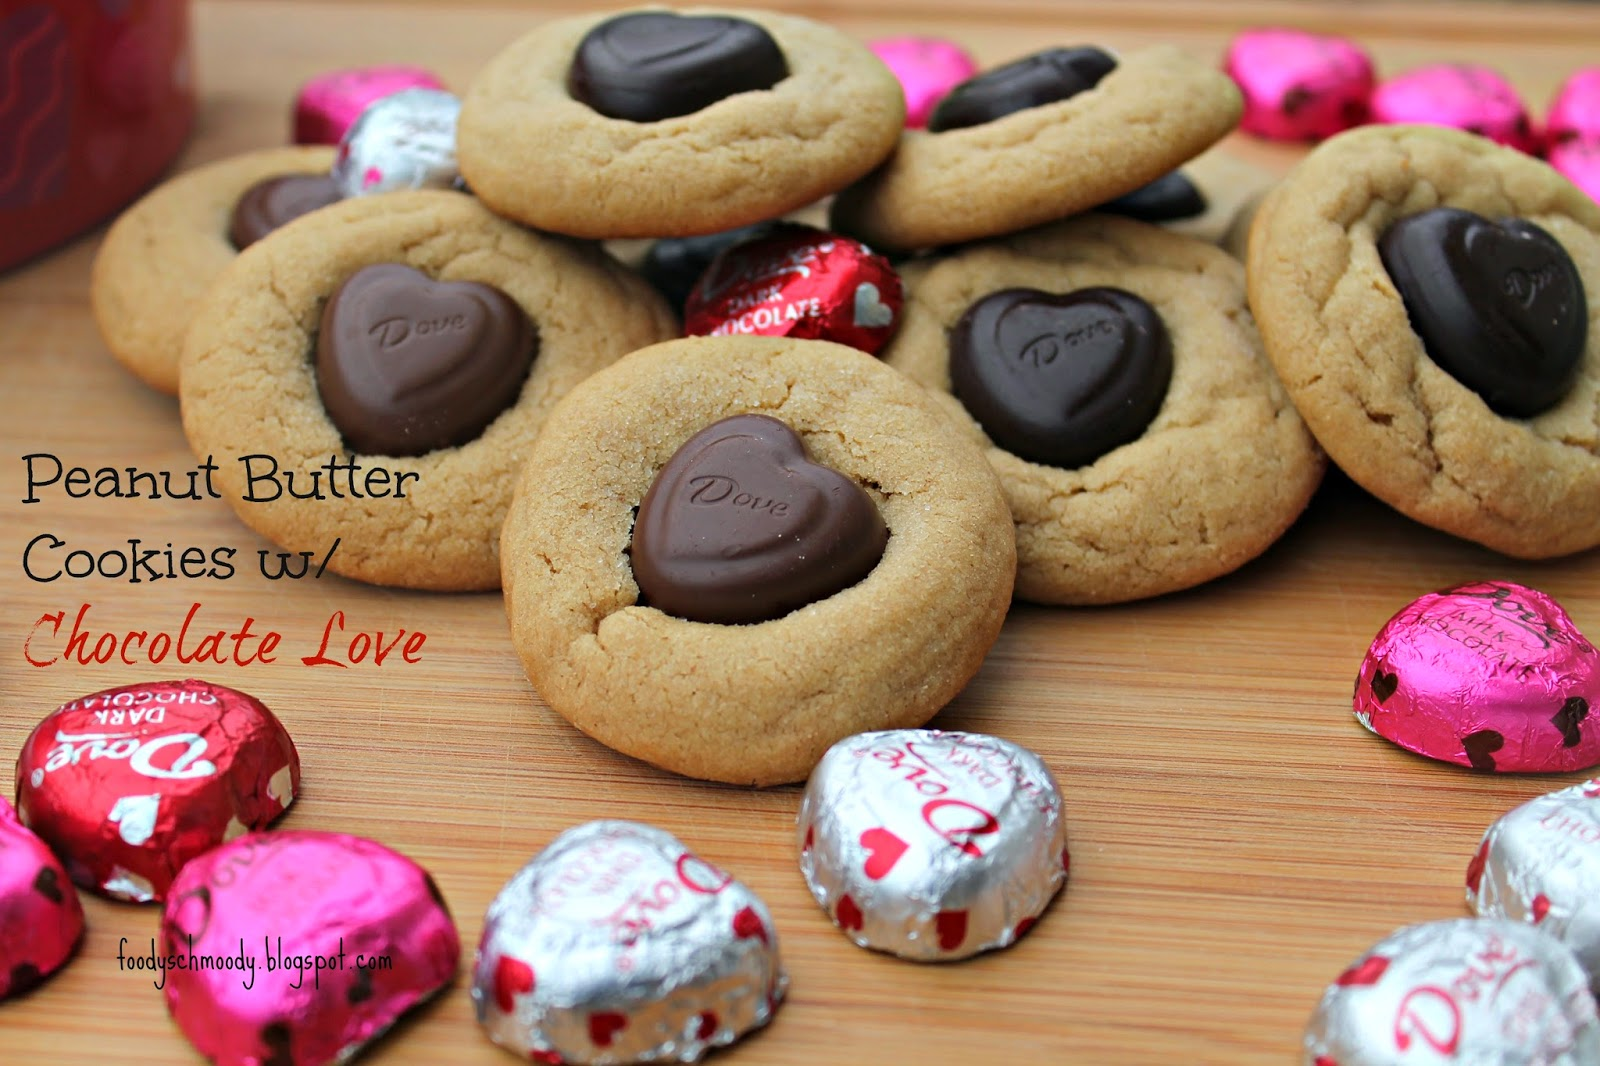 Peanut Butter Cookies w/ Chocolate Love